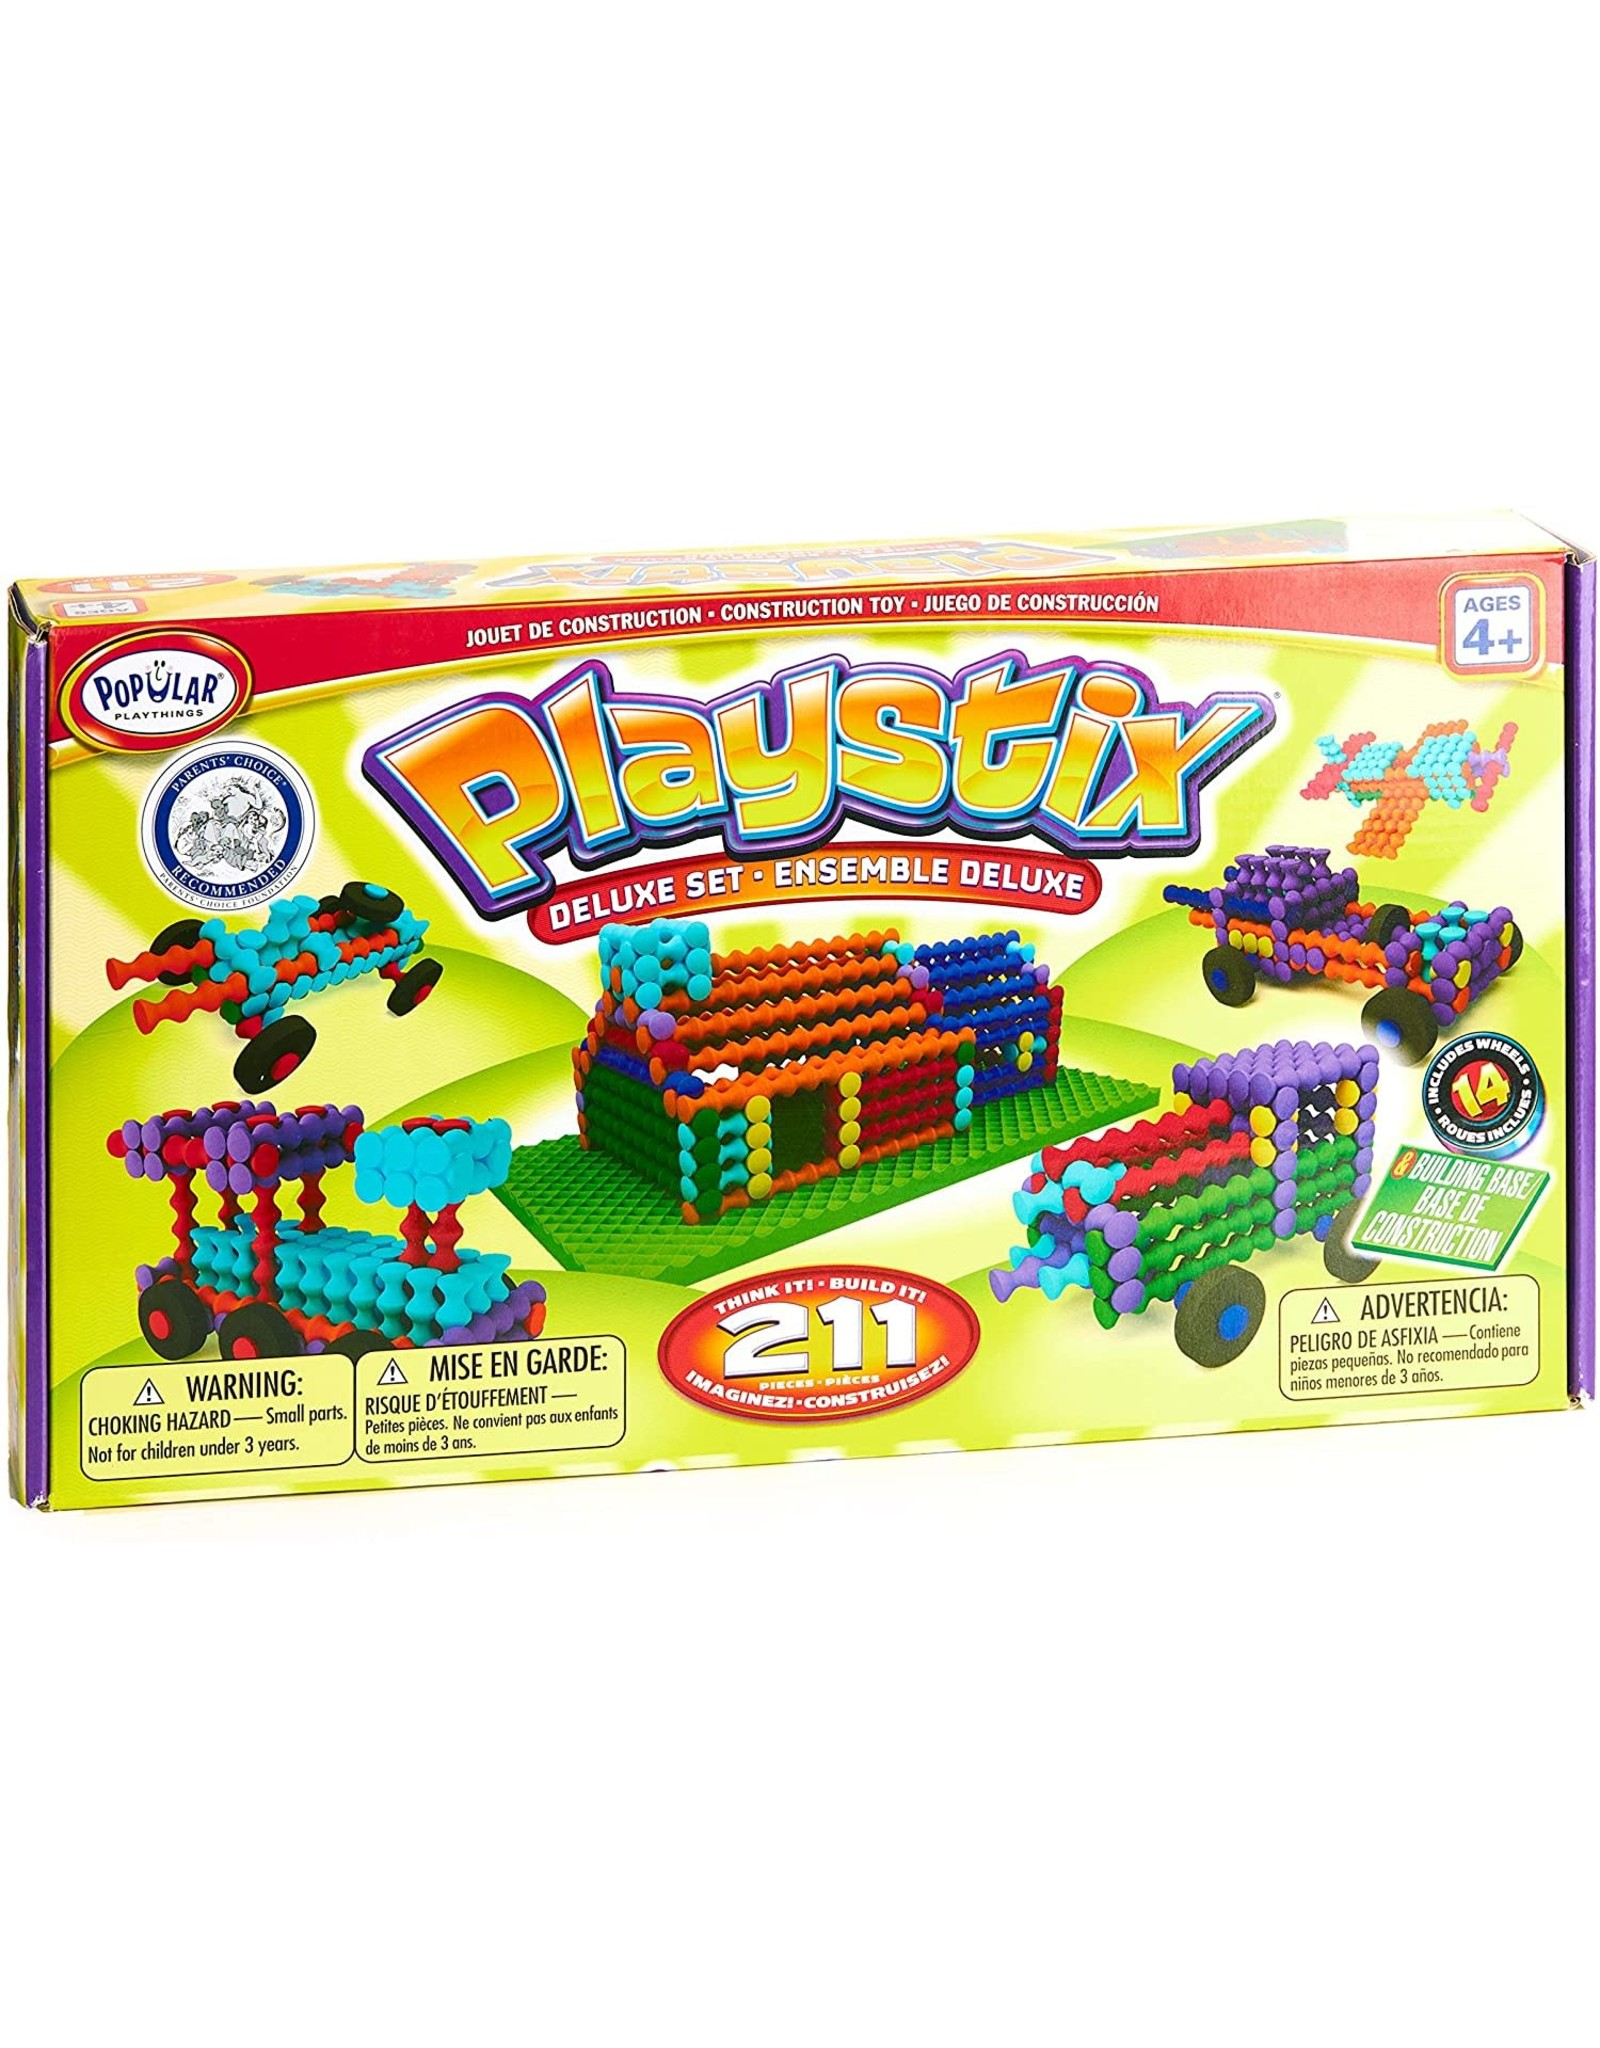 Popular Playthings Playstix Deluxe Set 211 Pcs.